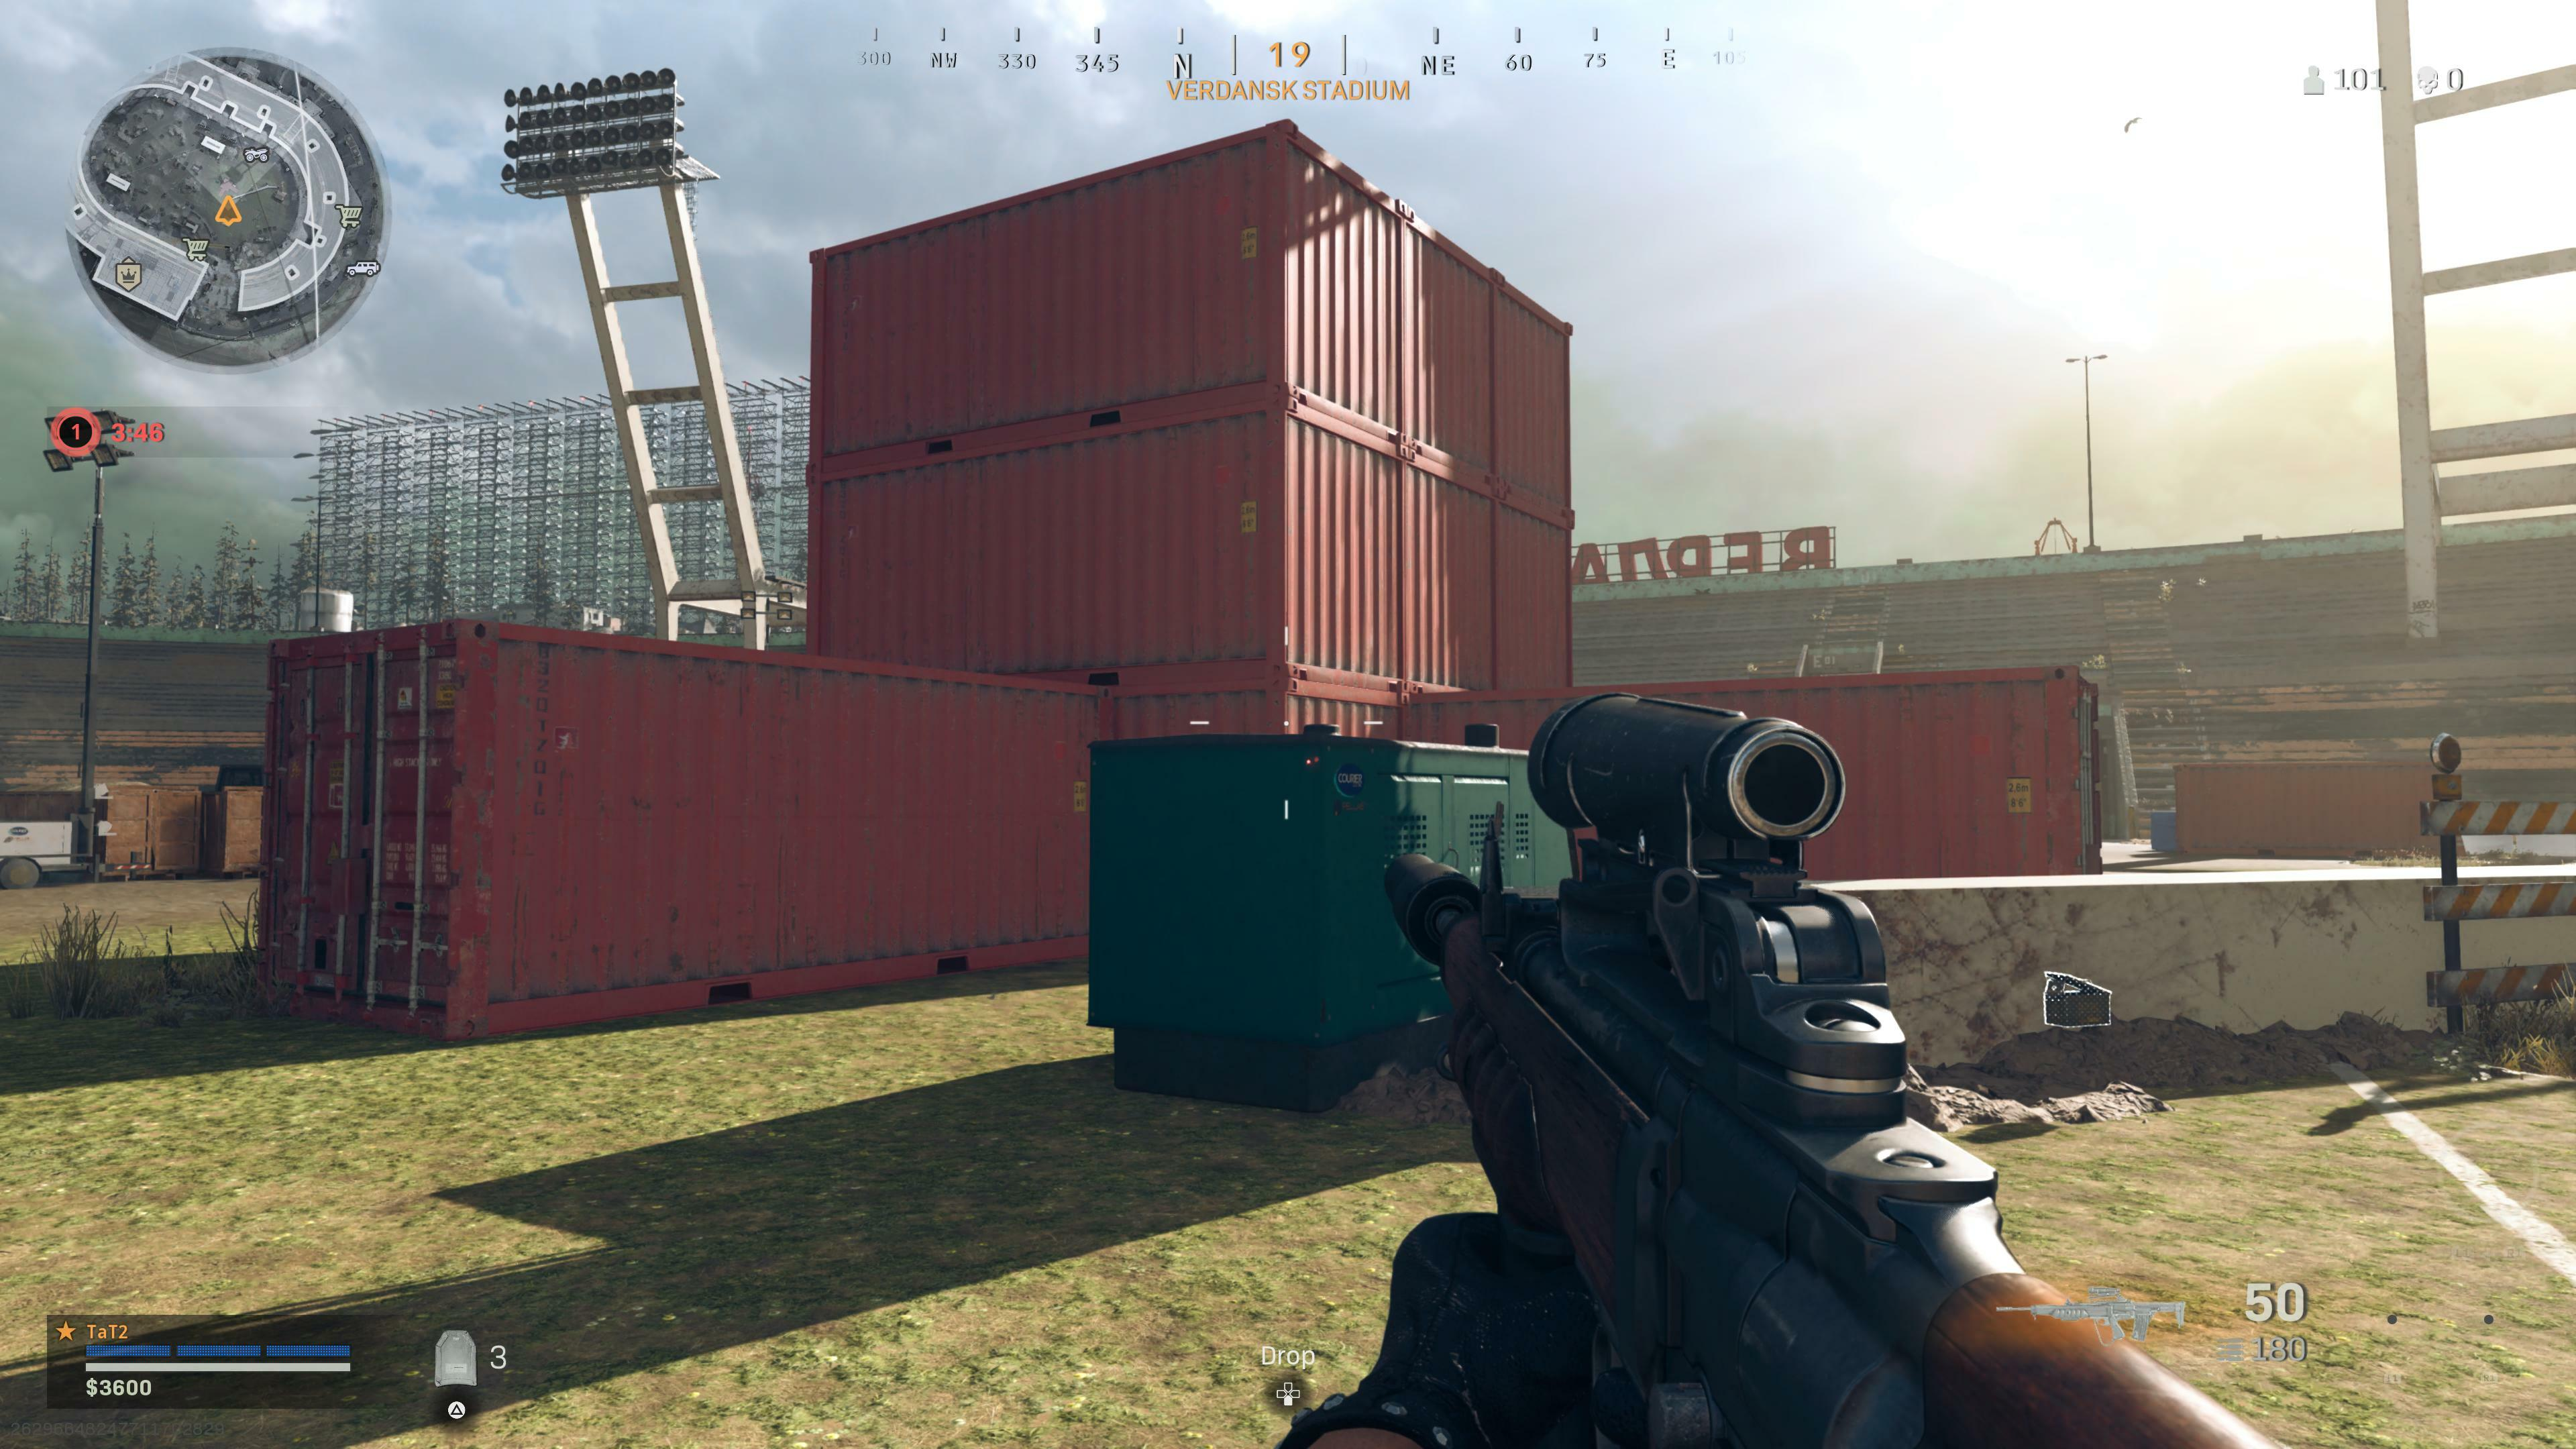 Warzone's odd shipping container stacks